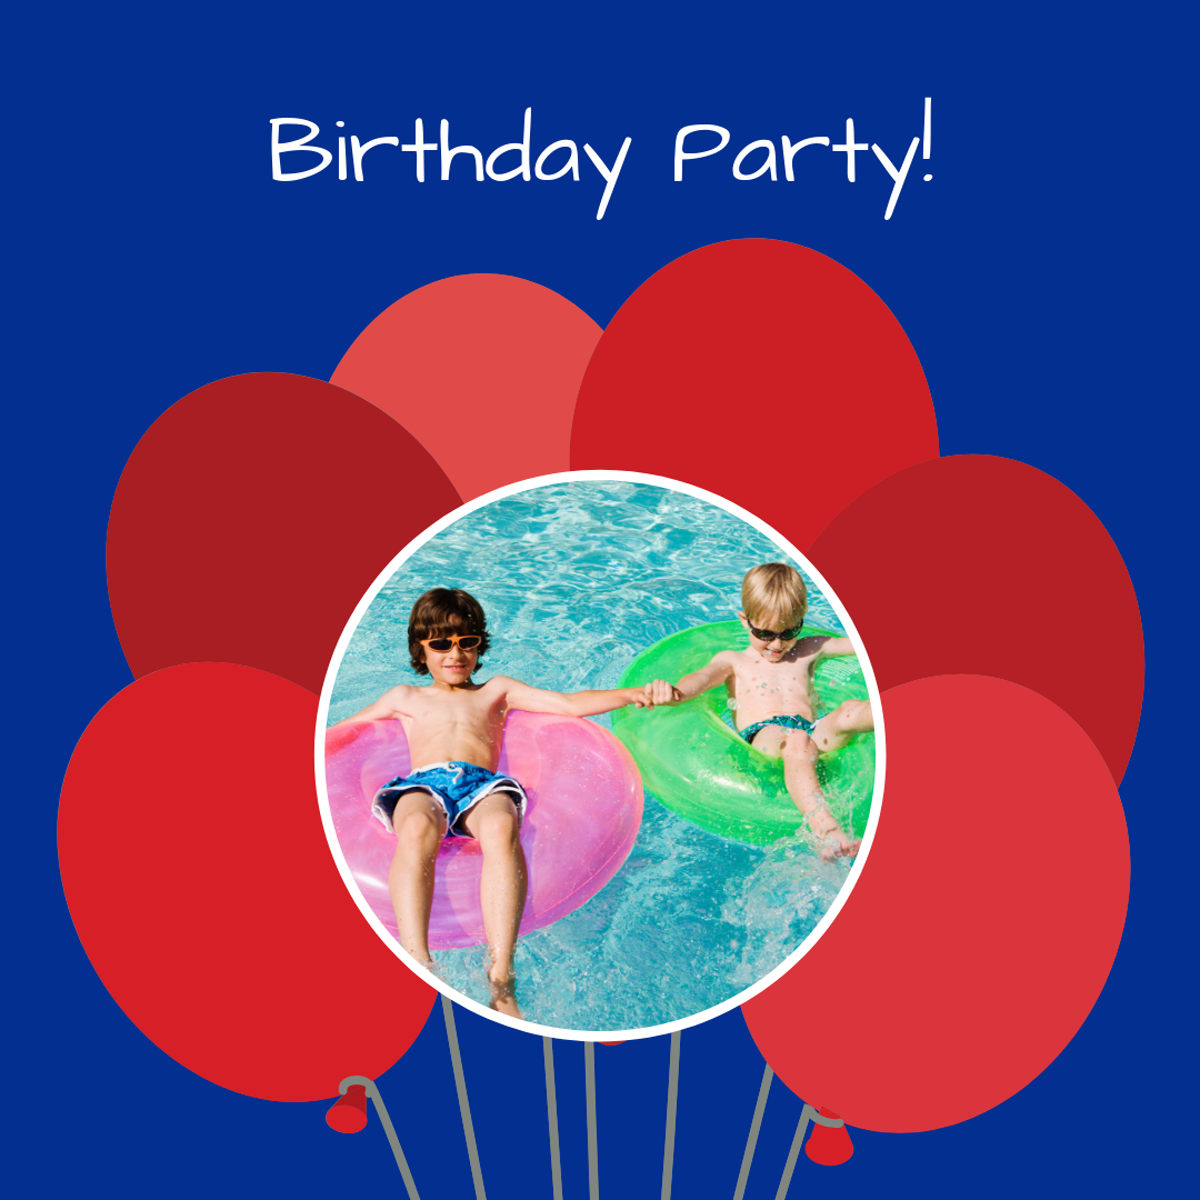 Make this birthday party one to remember  After swimming, a